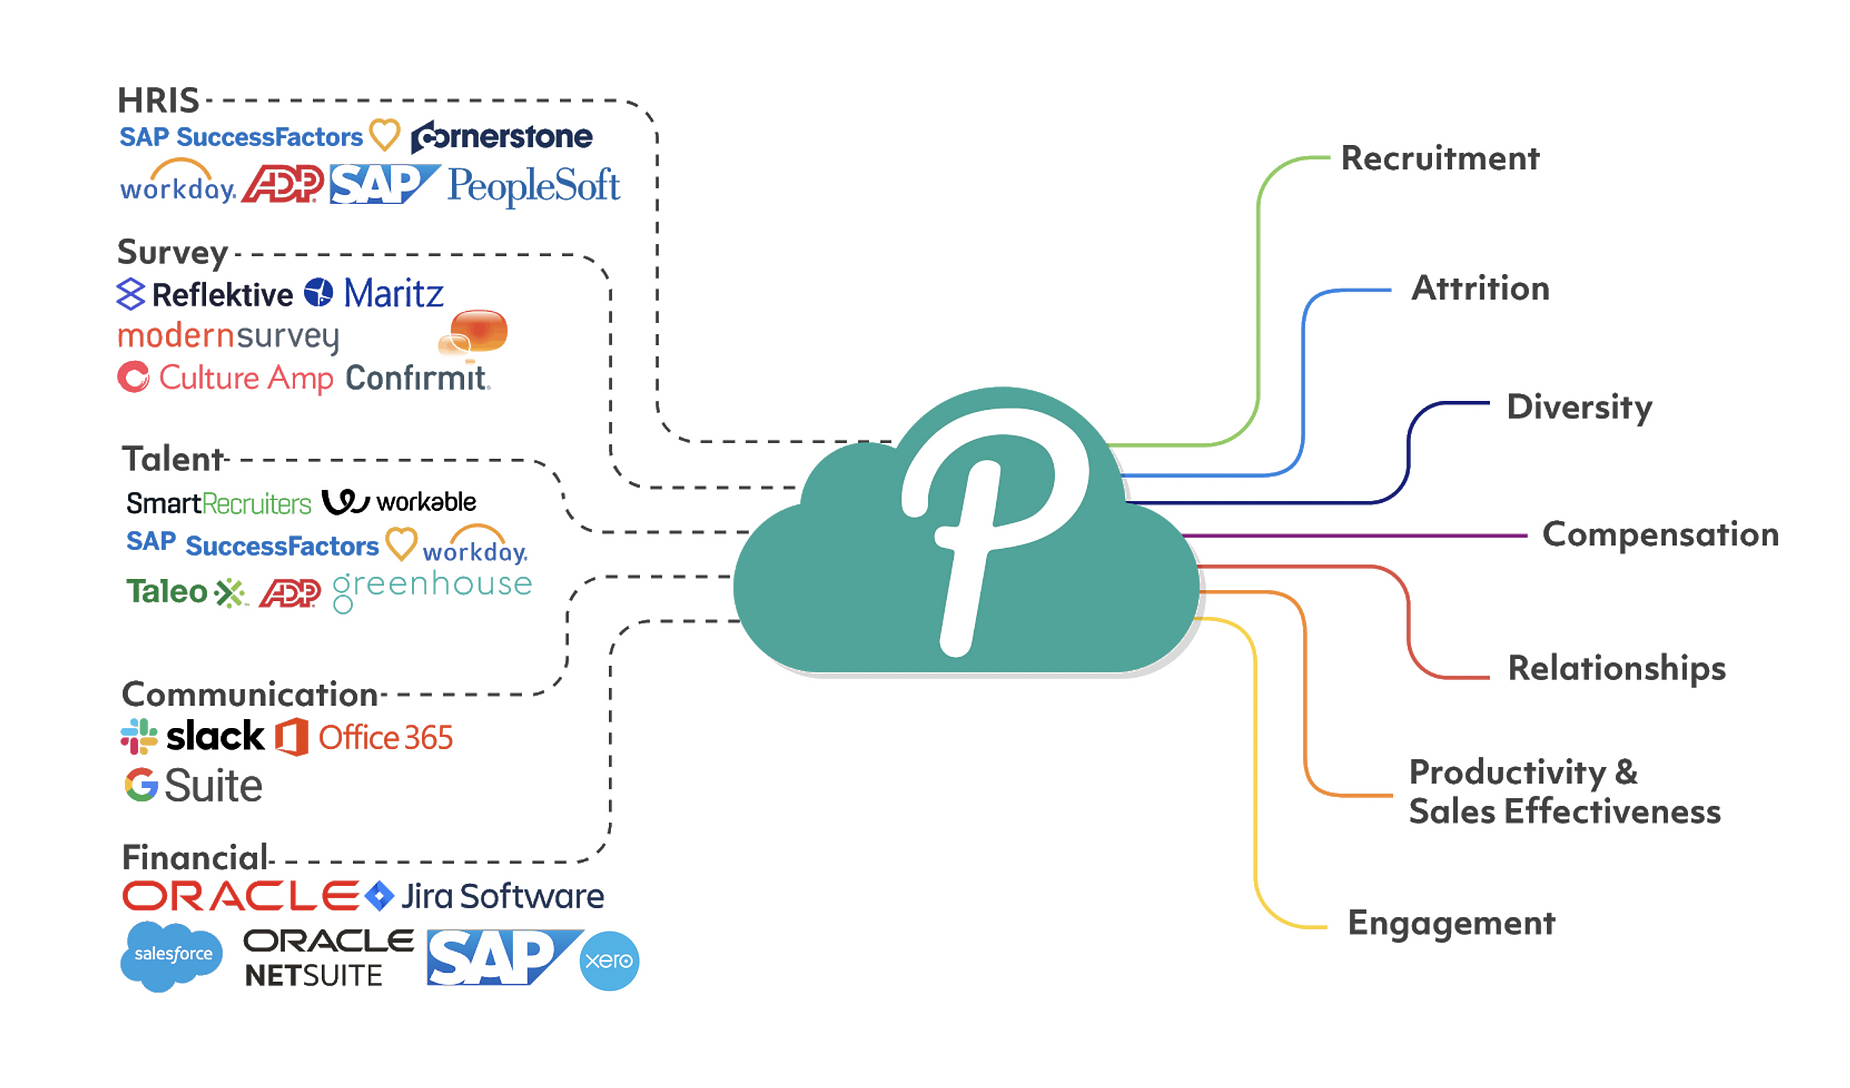 Panalyt integrates and analyze people data scattered across disparate HR, Business, Finance and Productivity systems and files